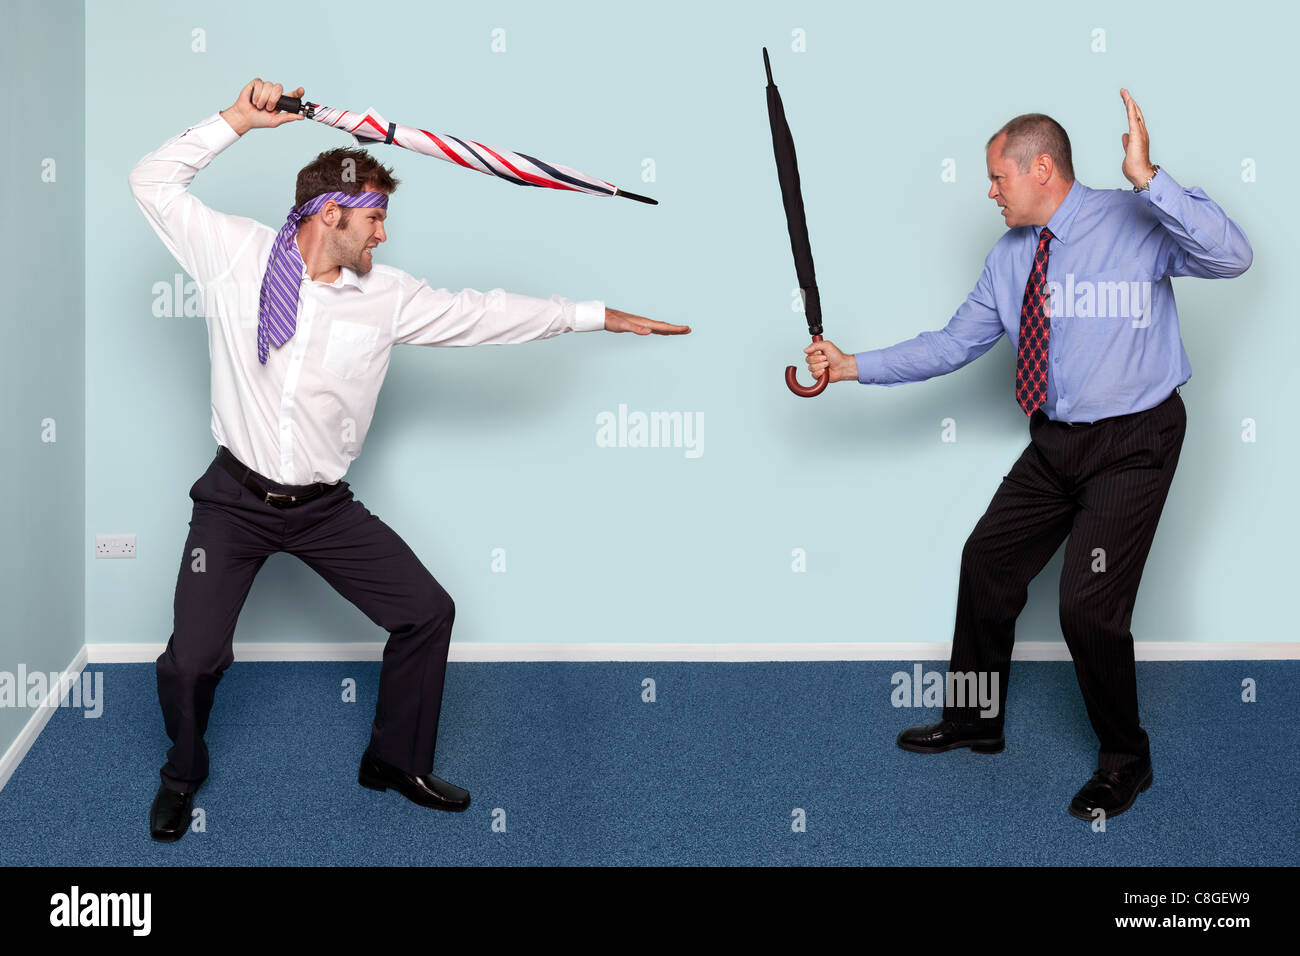 Photo of two businessmen having a sword fight using umbrellas, good image to convey conflict, rivalry or disagreement. - Stock Image